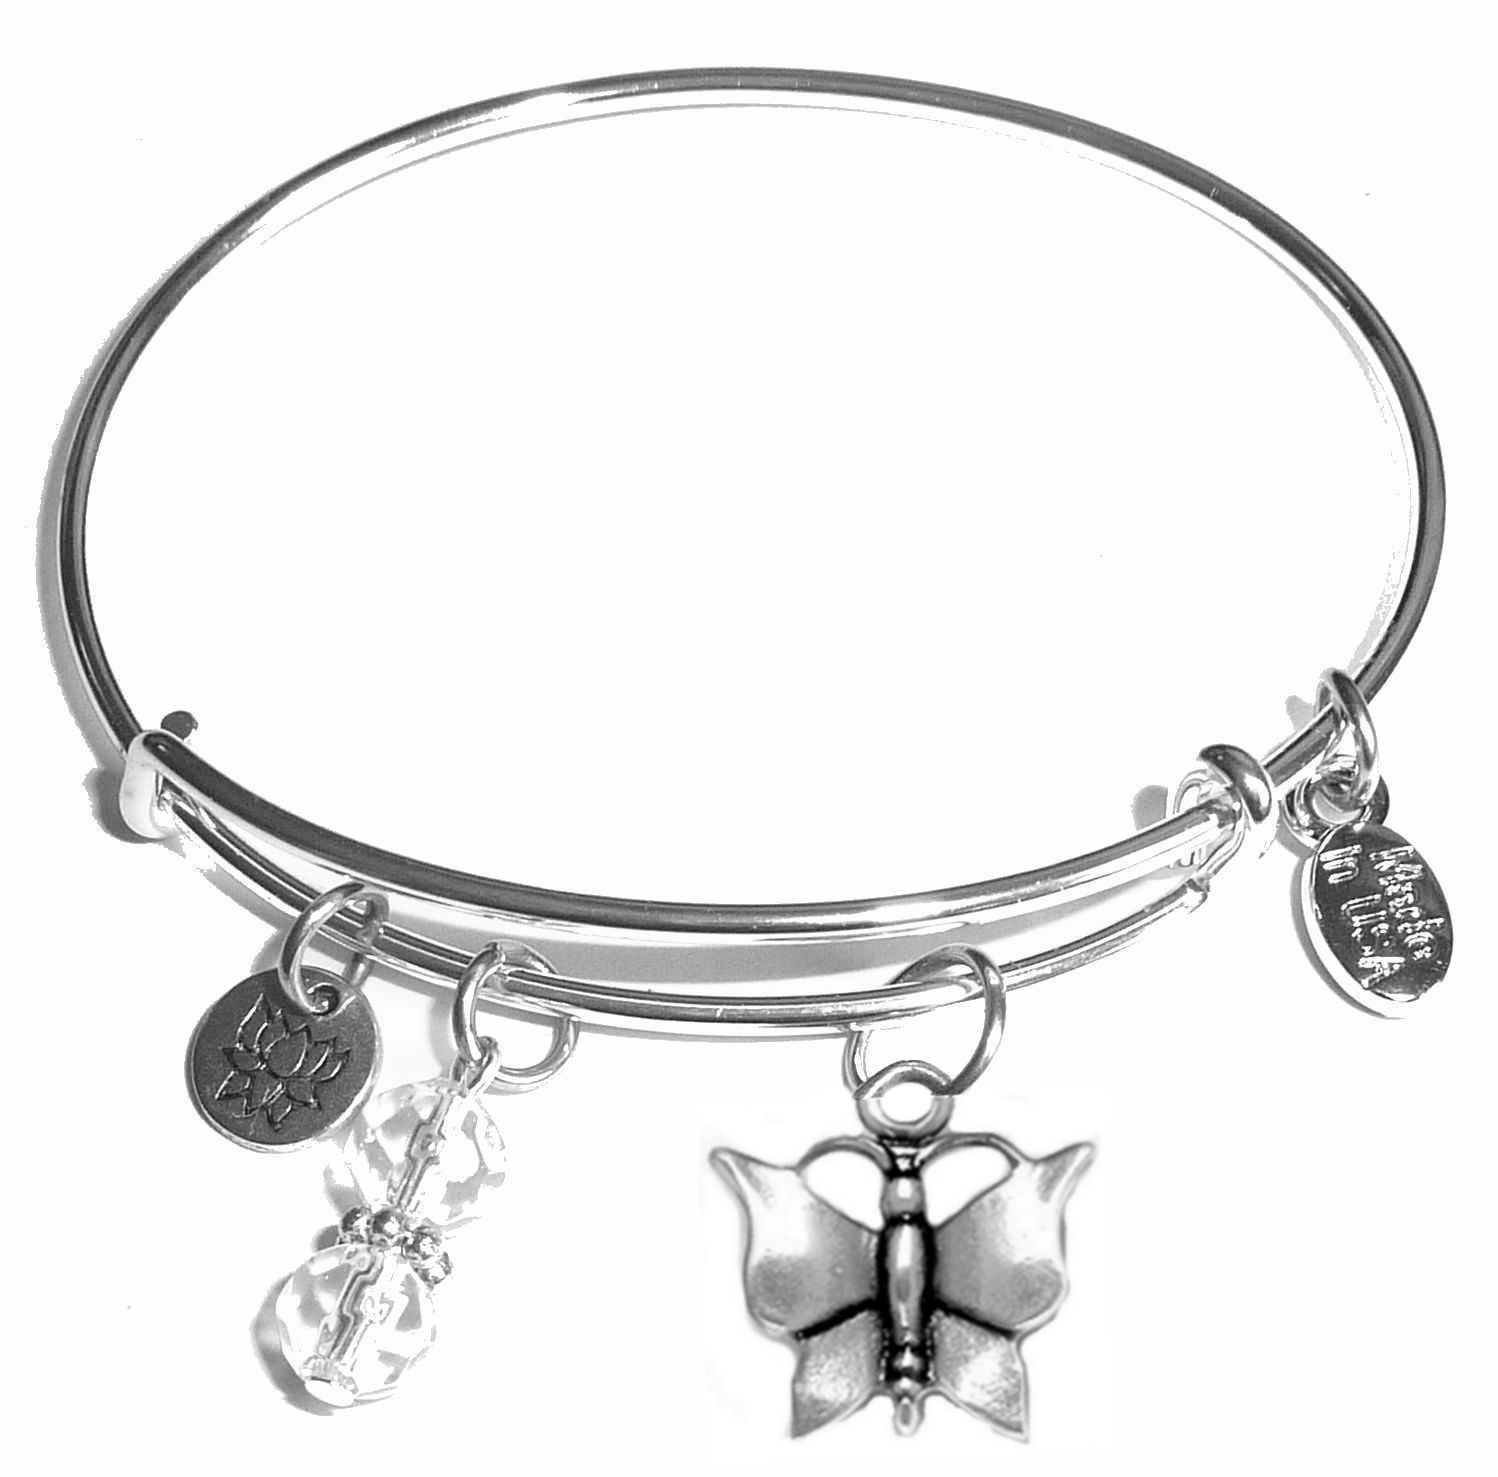 Erfly Message Bangle Bracelet Expandable Wire Comes In A Gift Box